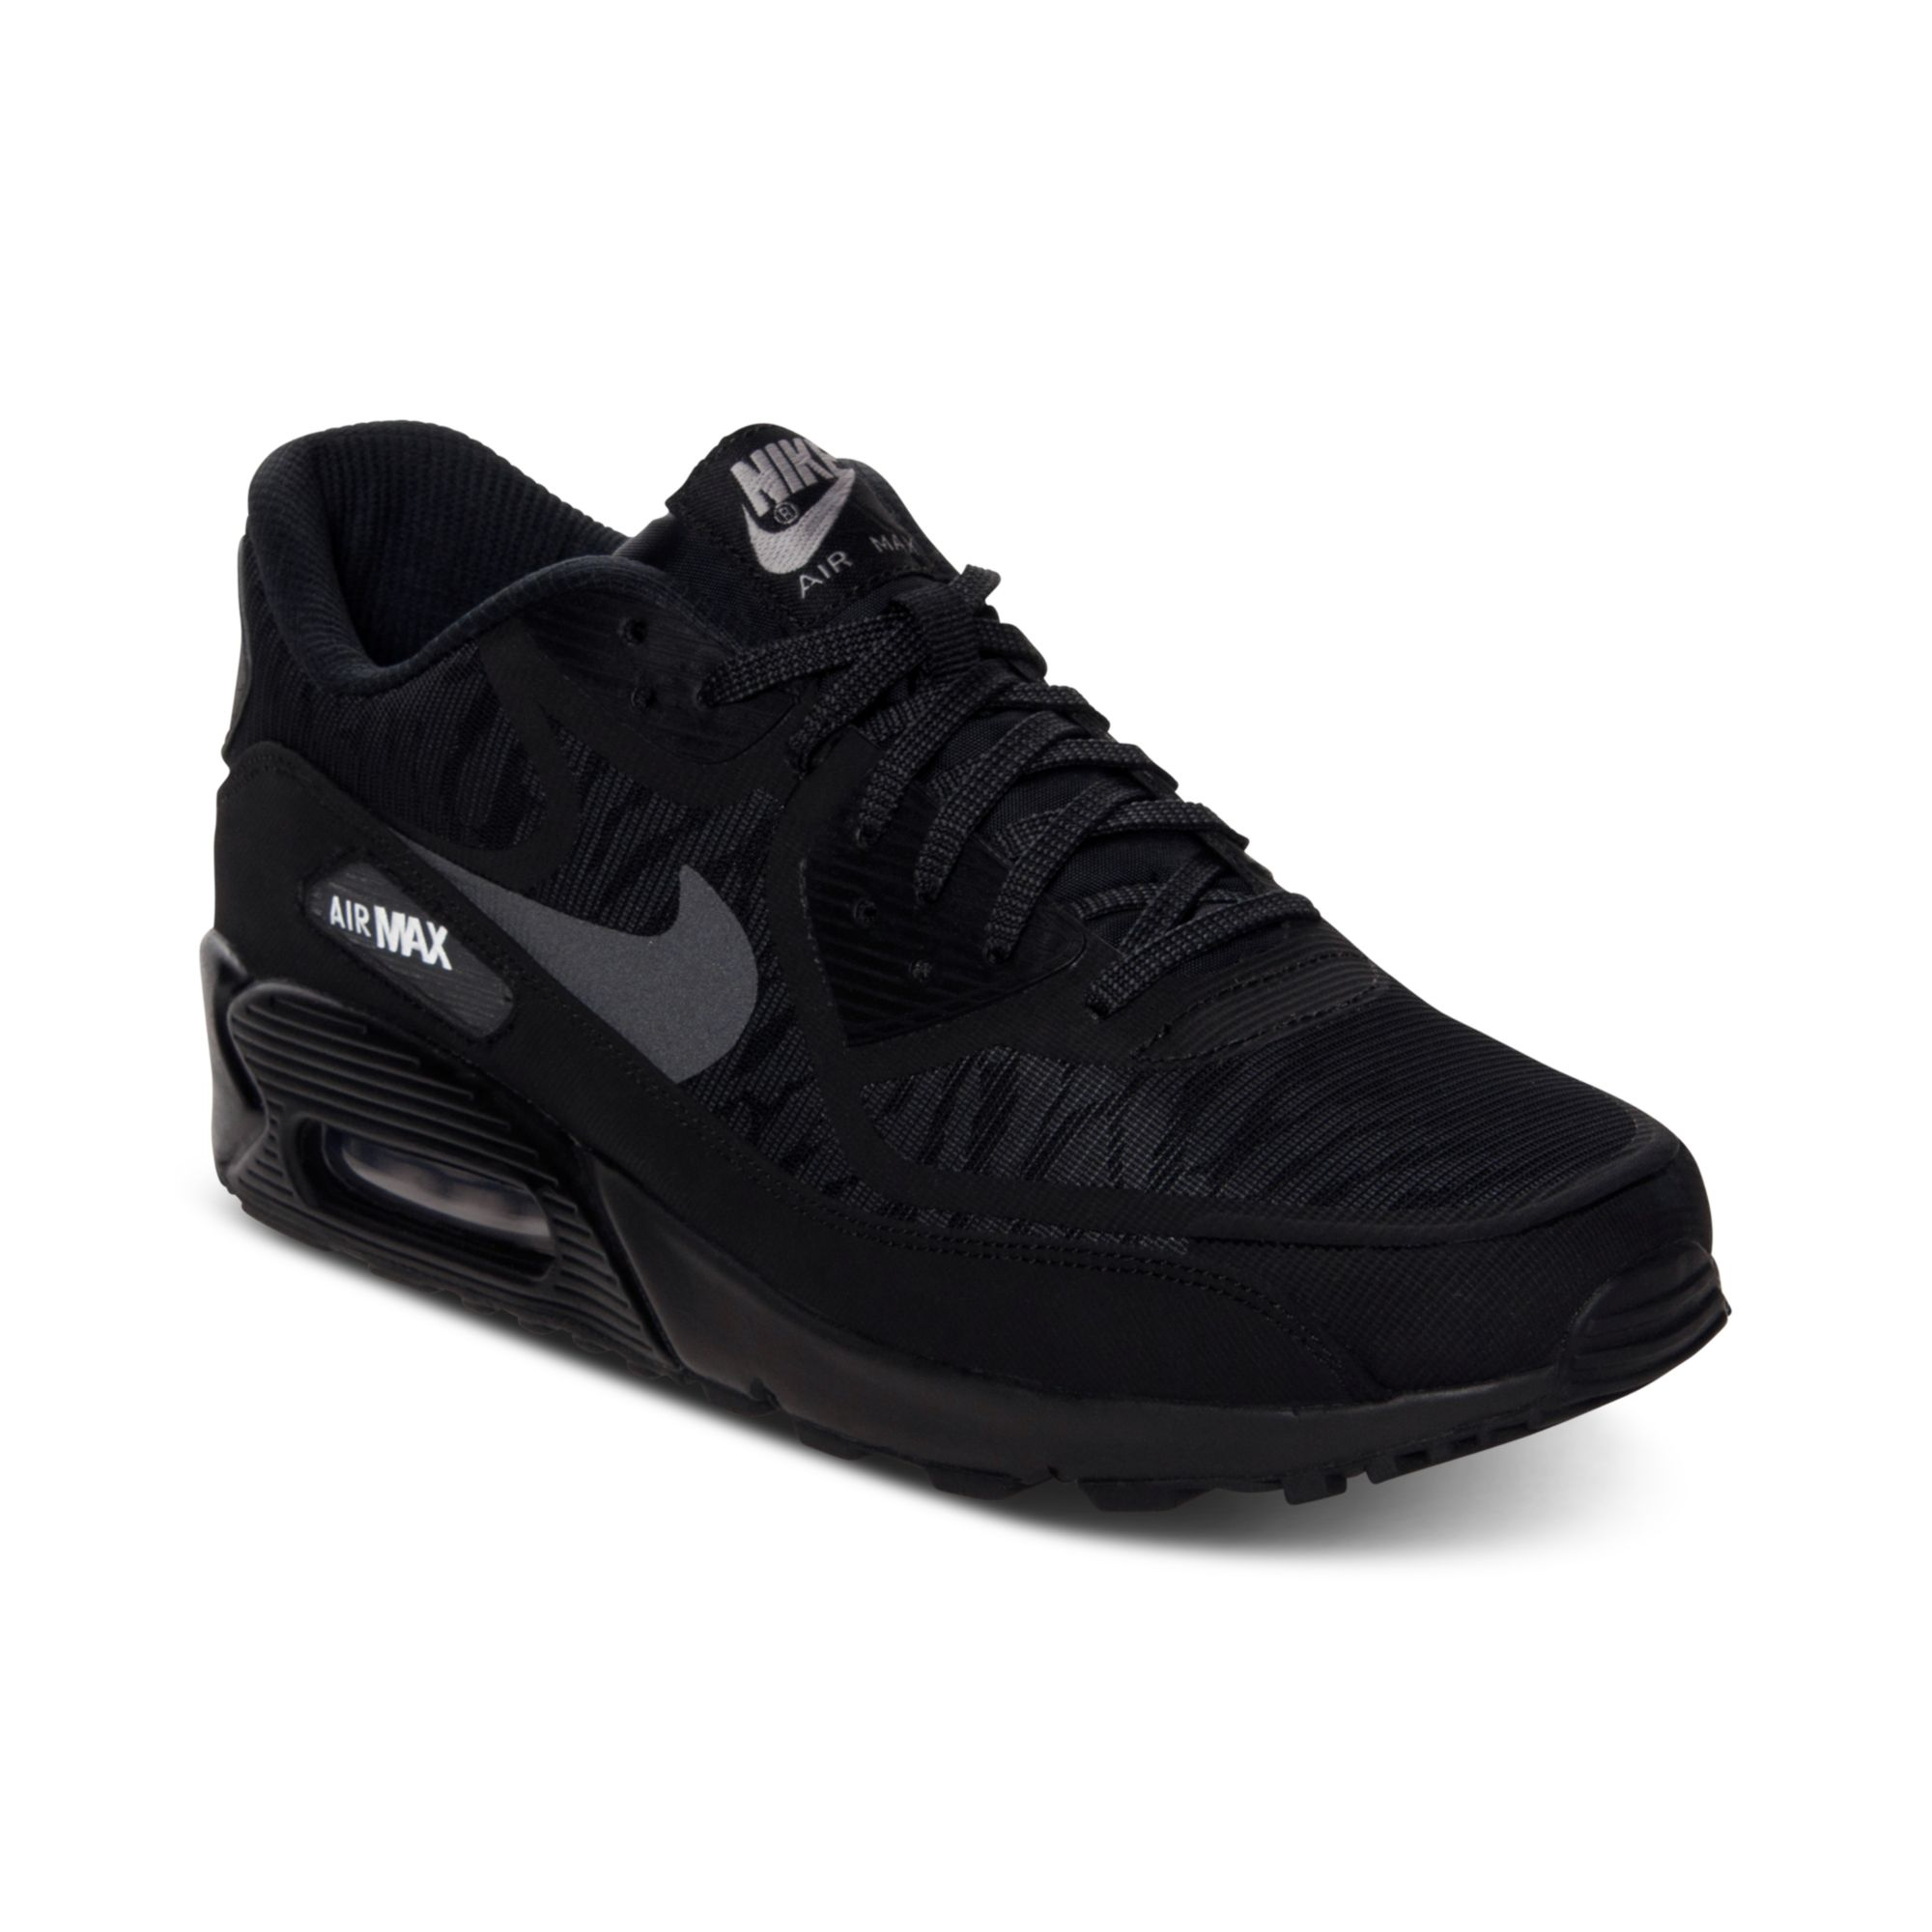 rptmcntf uk all black mens nike free run. Black Bedroom Furniture Sets. Home Design Ideas